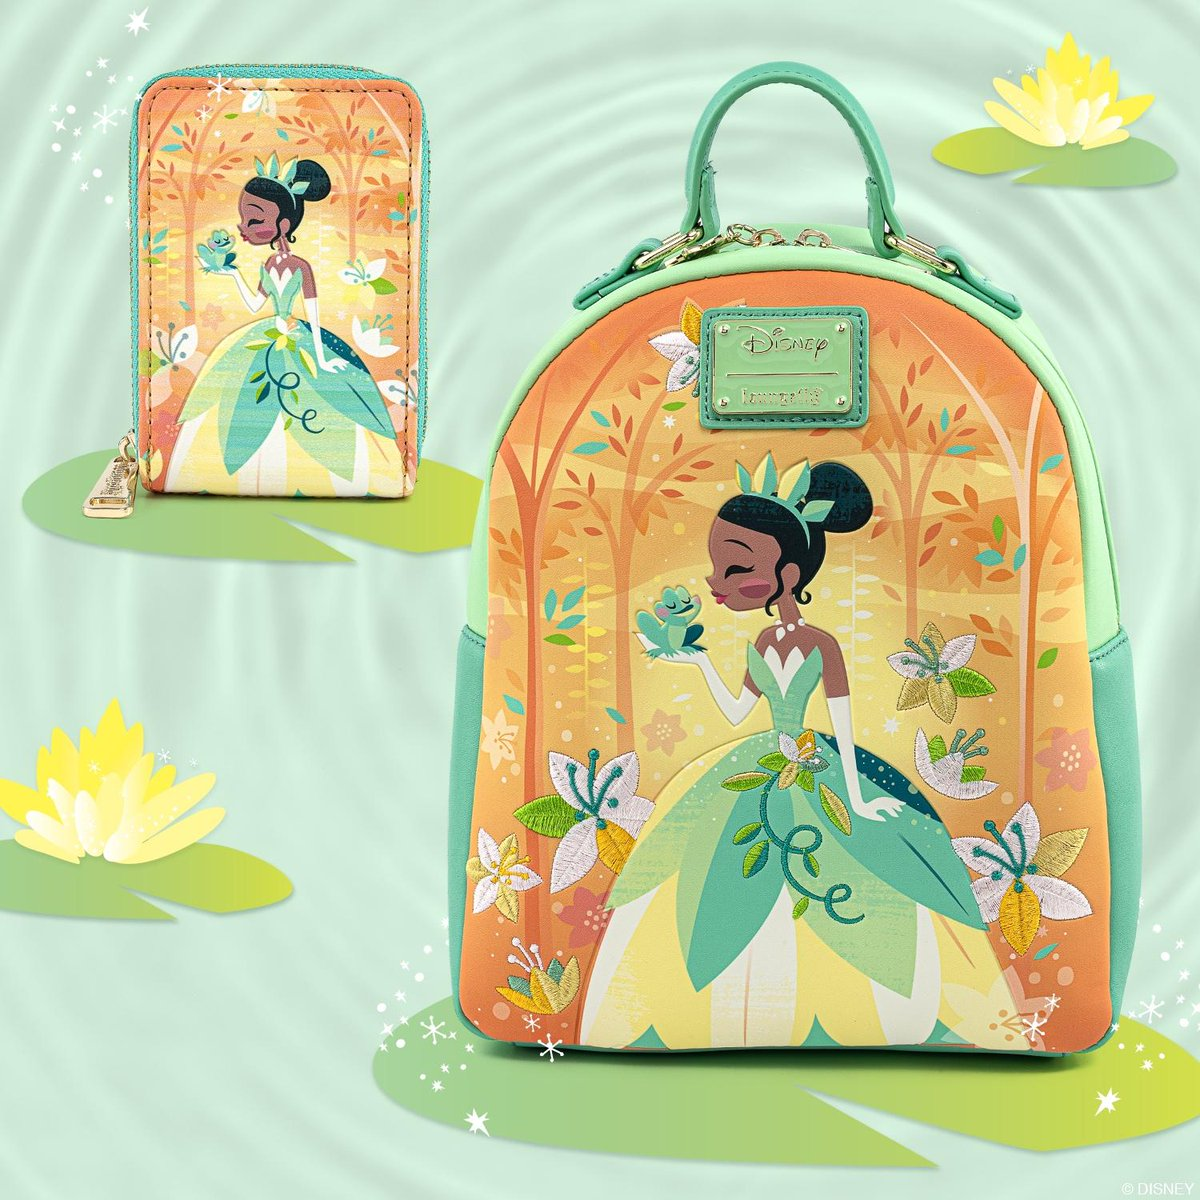 💛🐸💛 The dreamiest Tiana collection is whisking us away!!! We've been counting down the days to announce its arrival! Now available on bit.ly/34mzmtr! 💛🐸💛 #Loungefly #DisneyPrincess #Disney